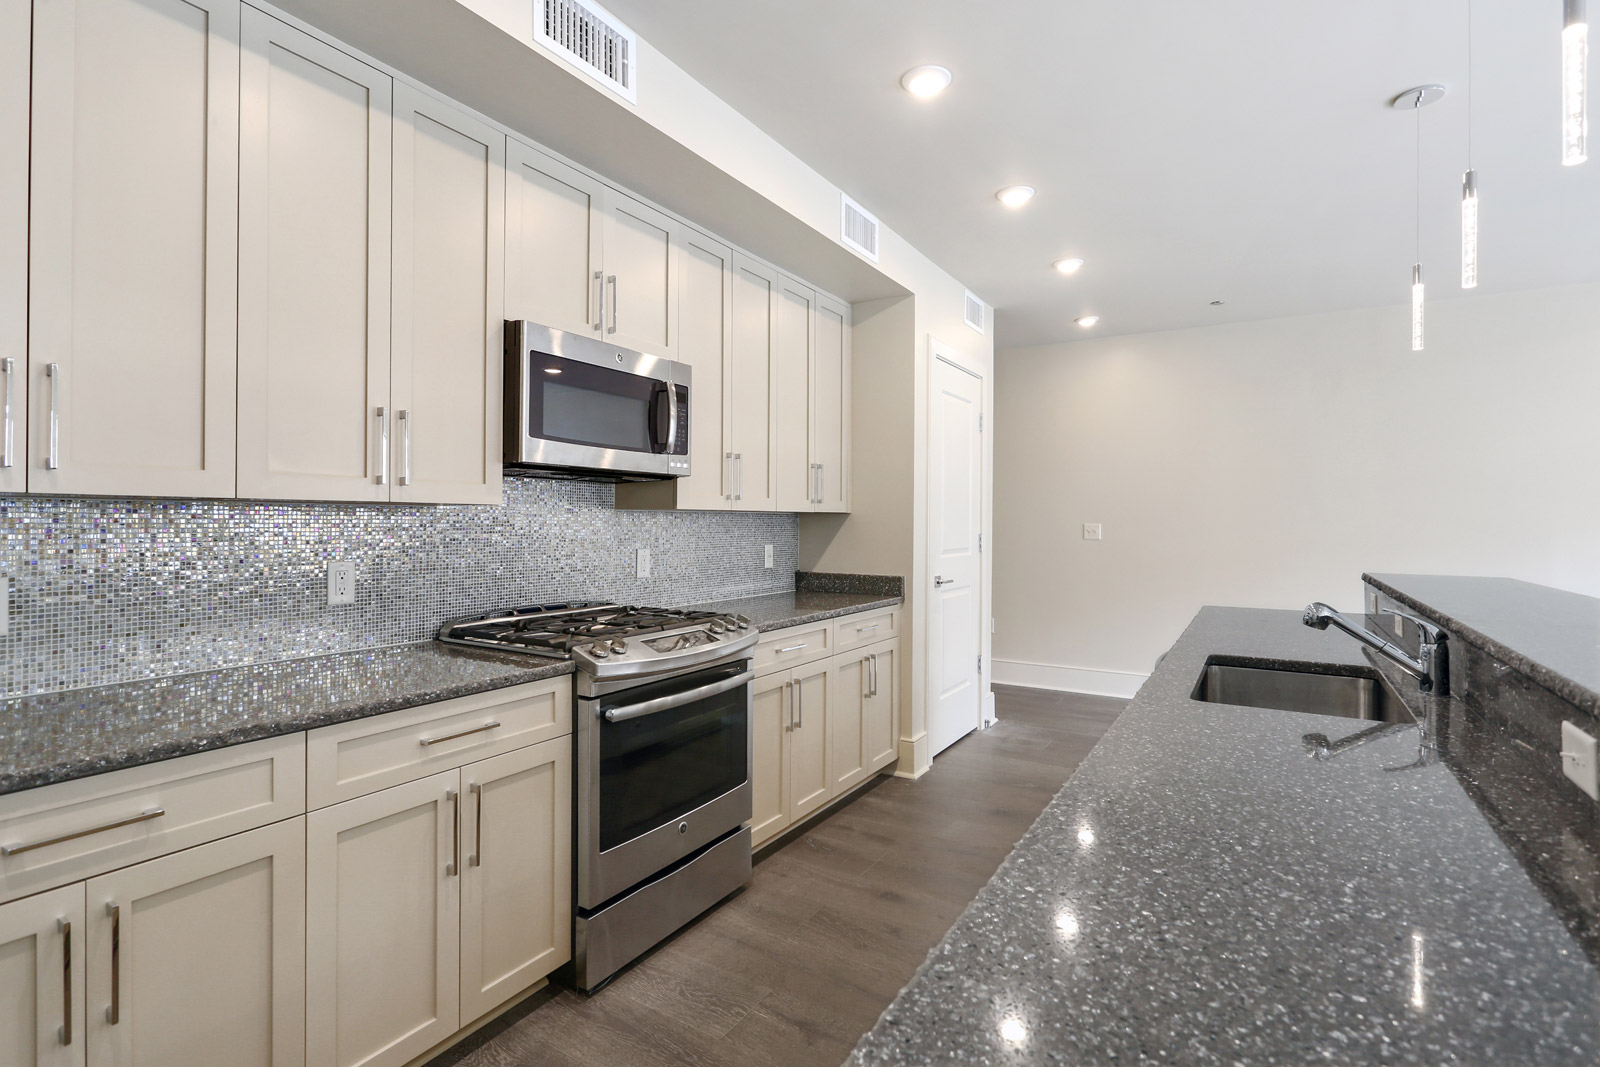 Refinery Orleans Properties 701 South Peters Warehouse District Apartments For Sale New Orleans Louisiana